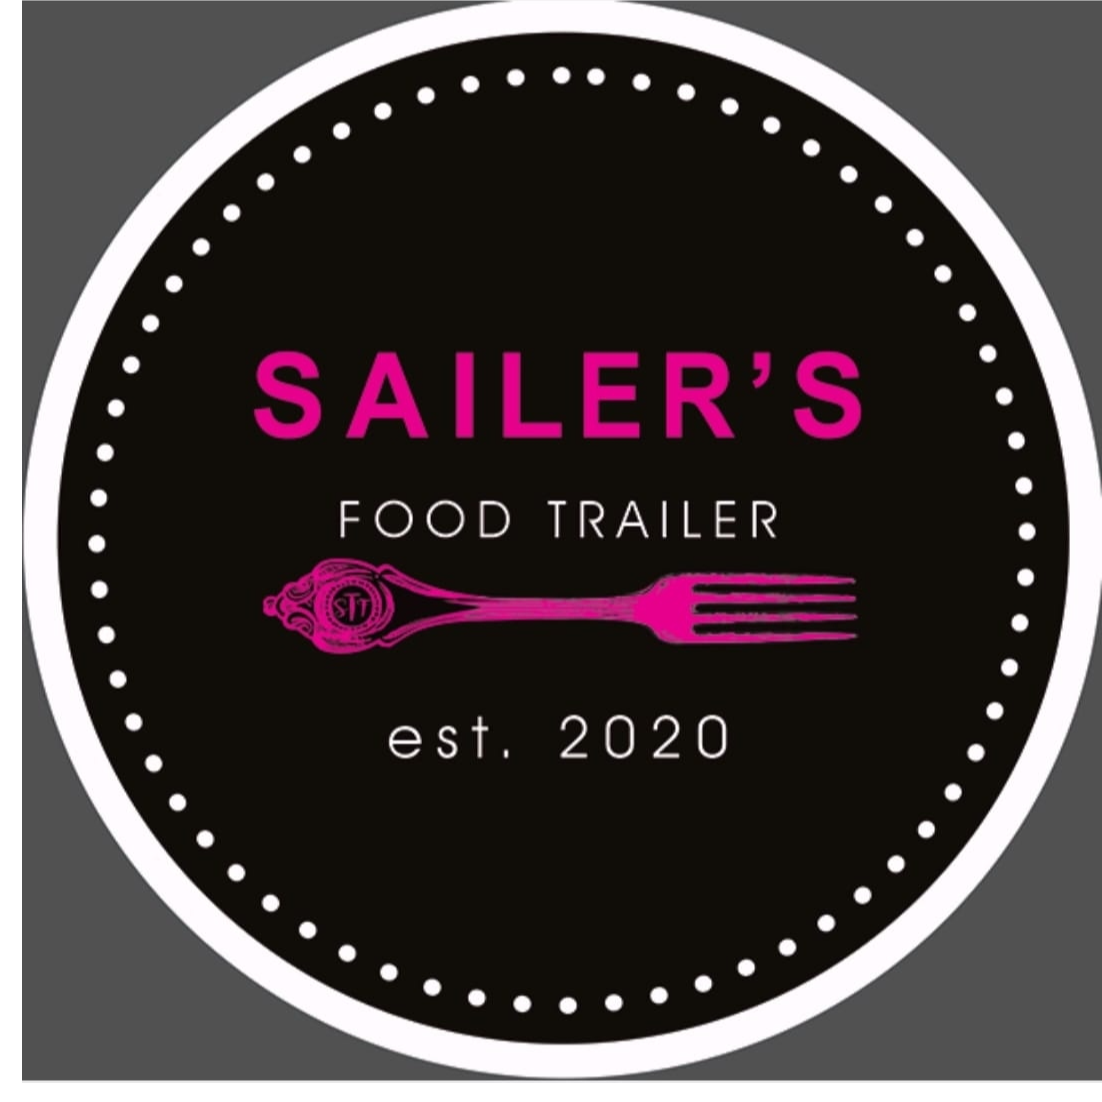 Sailor's Food Trailer logo